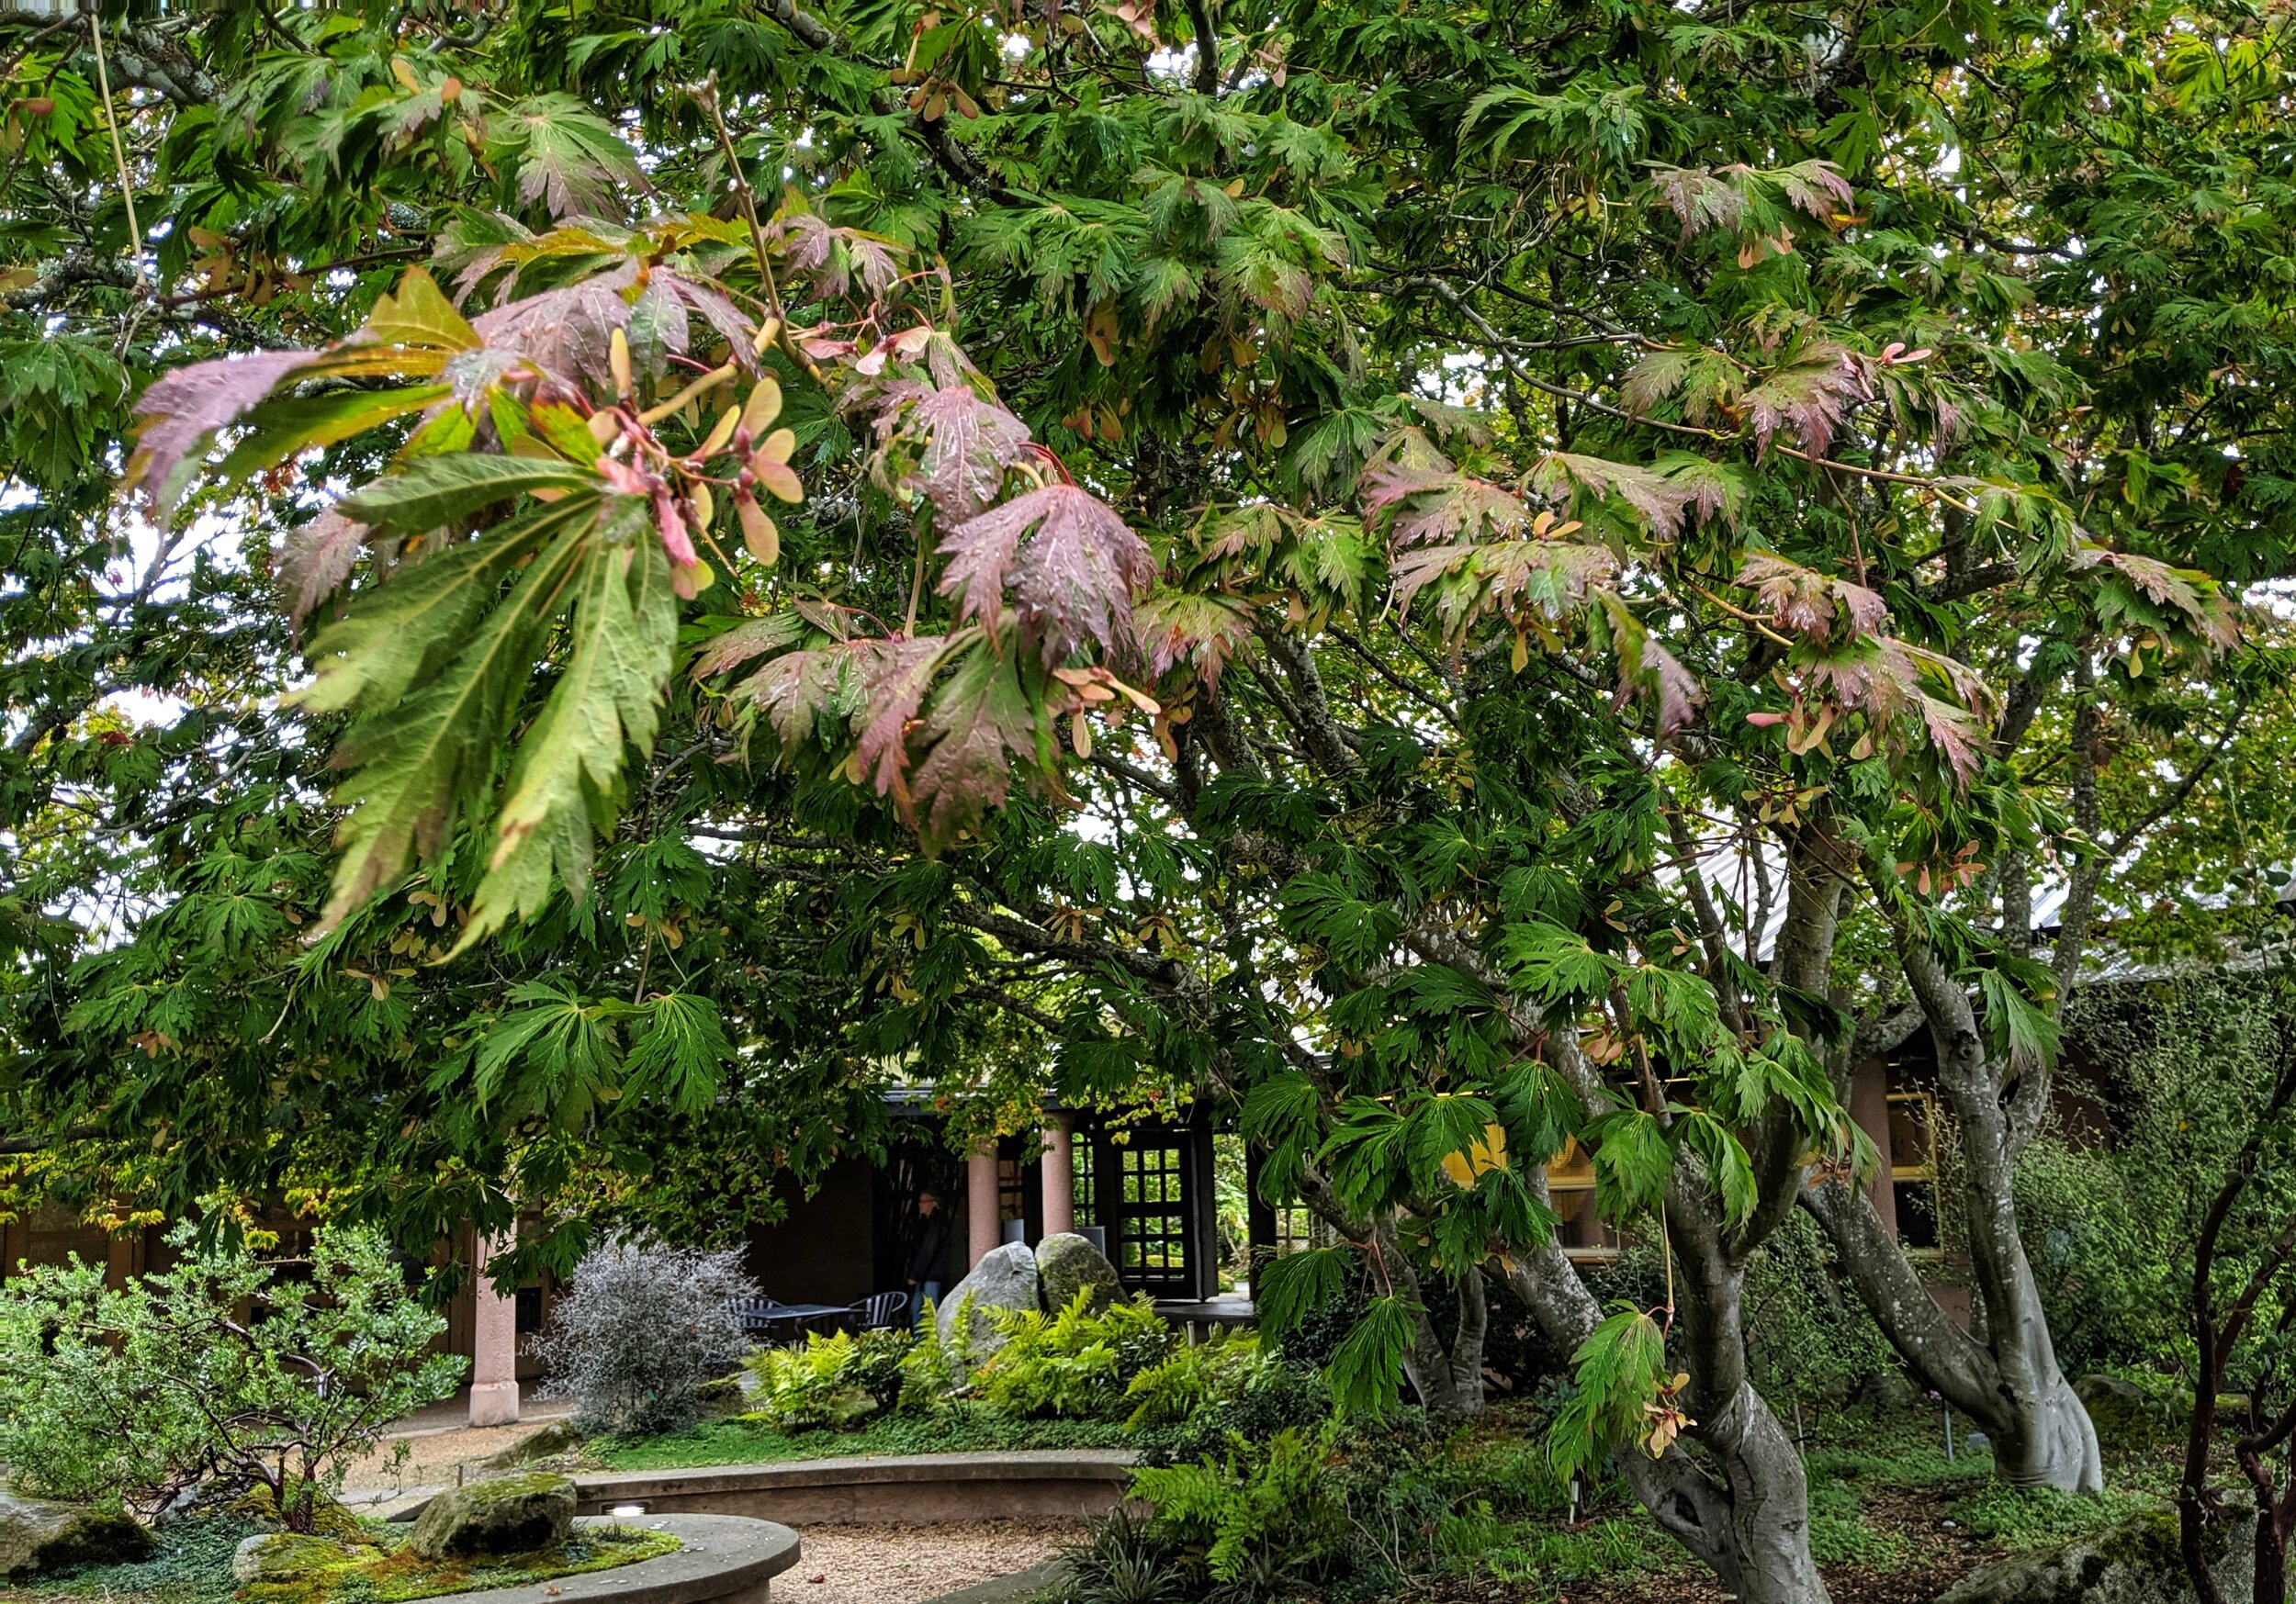 In late September, fern-leaf full moon maple is beginning to show fall color in the McVay Courtyard at the Center for Urban Horticulture. (photo: Corinne Kennedy)